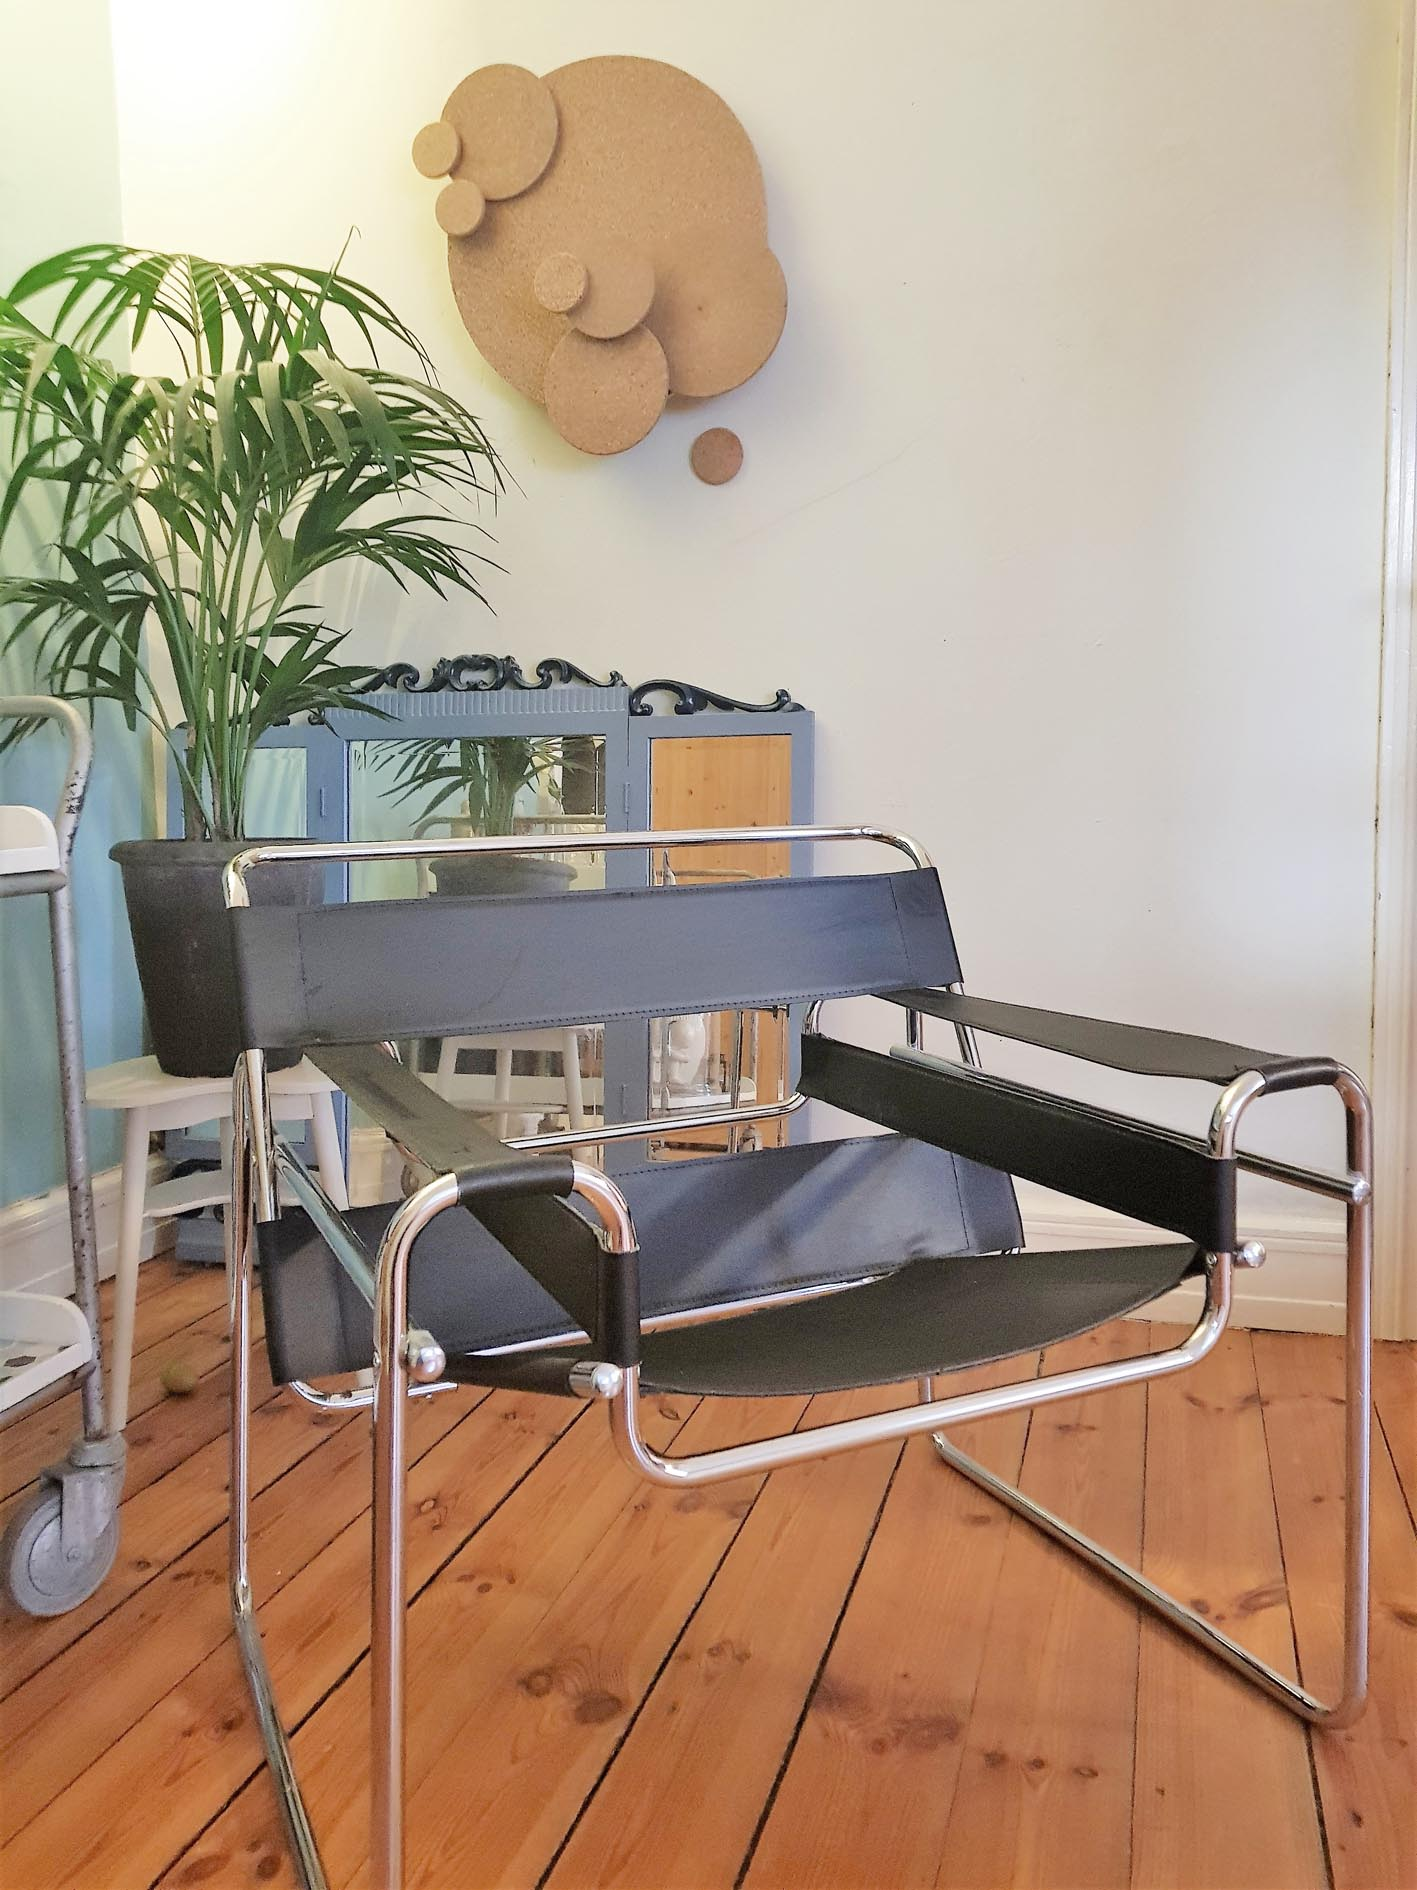 Wassily lounge chair designed in 1925 by Marcel Bauer who was at the Bauhaus at that time.